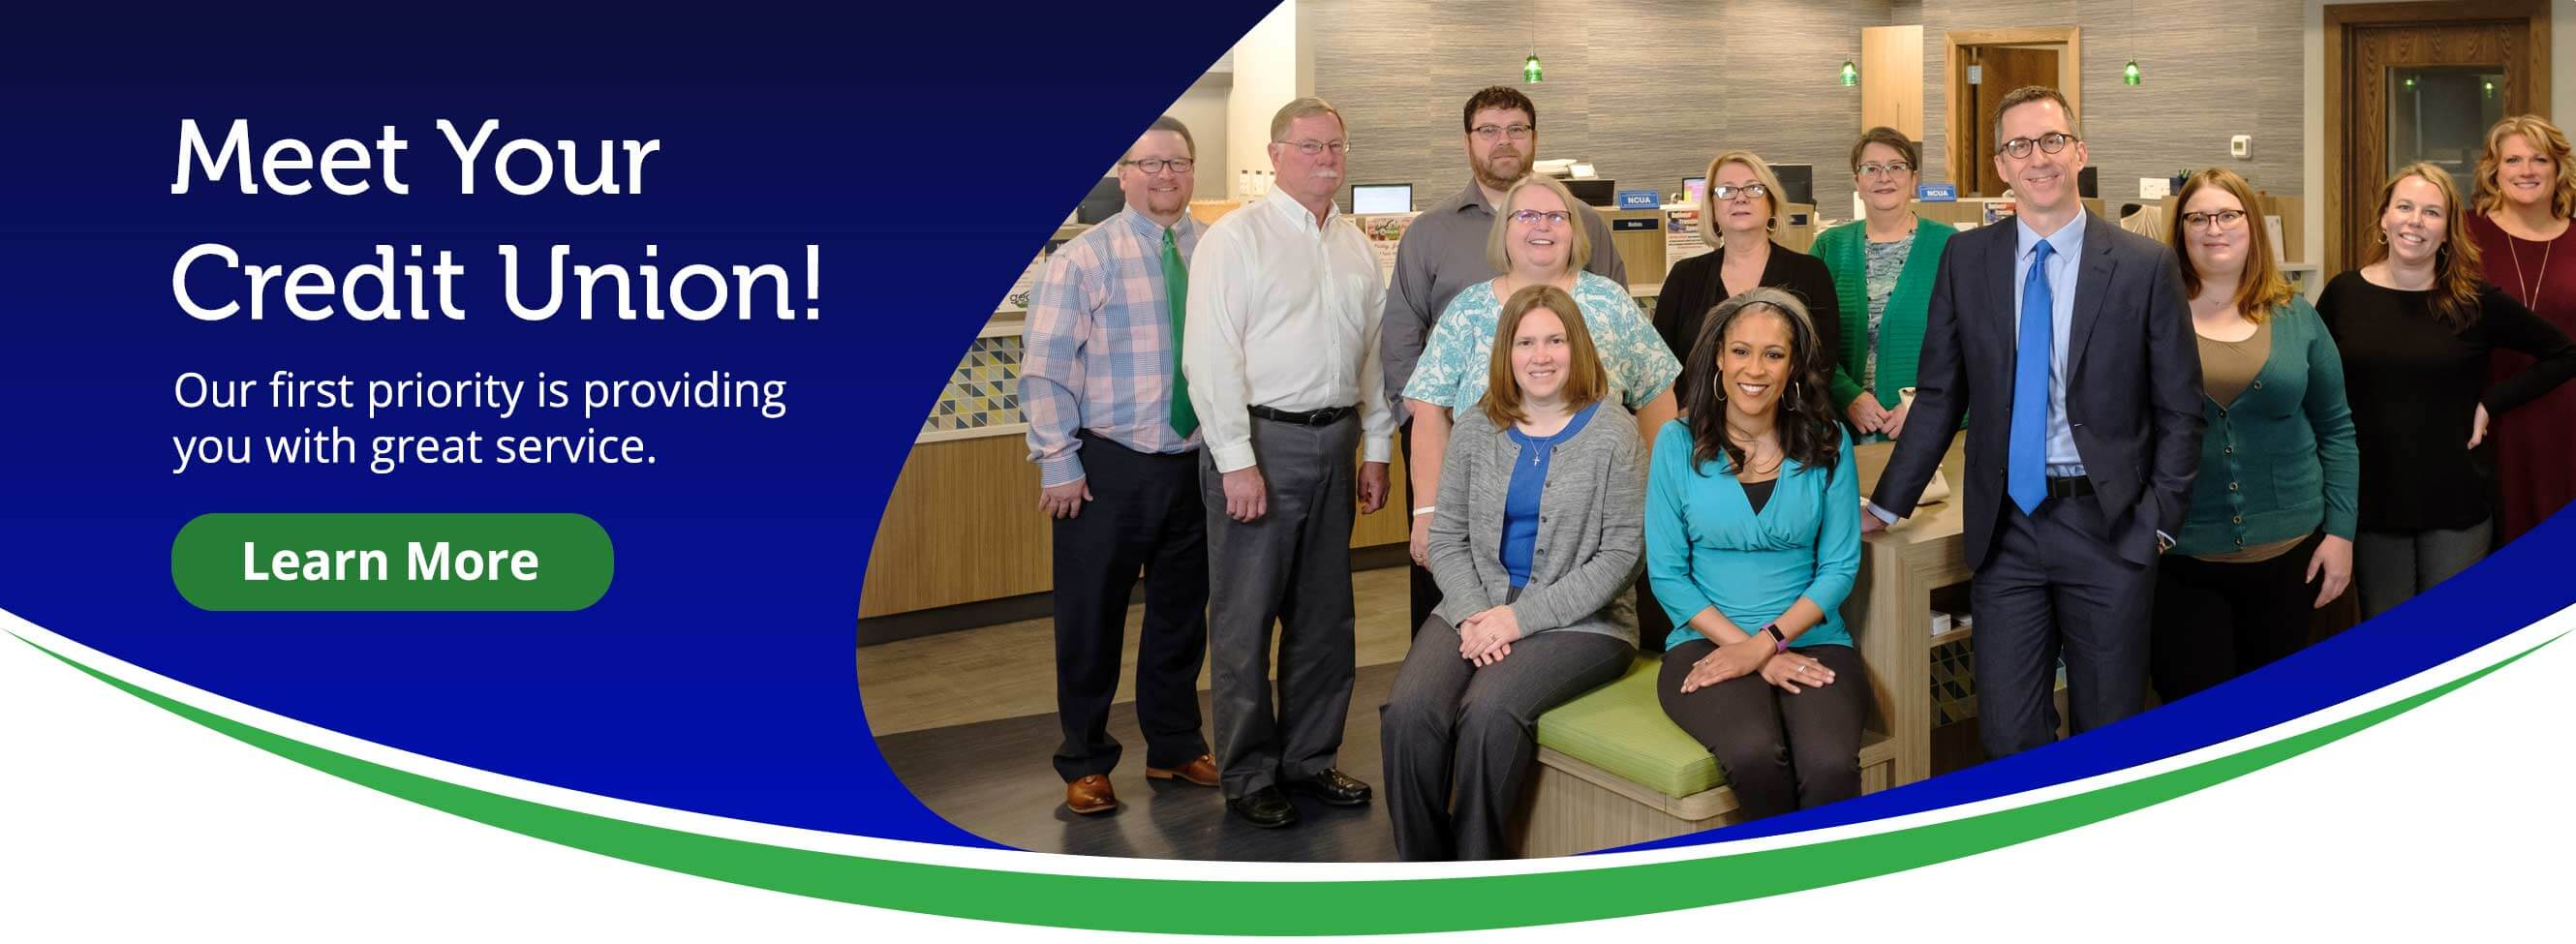 Meet Your Credit Union! Our first priority is providing you with great service. Learn More.